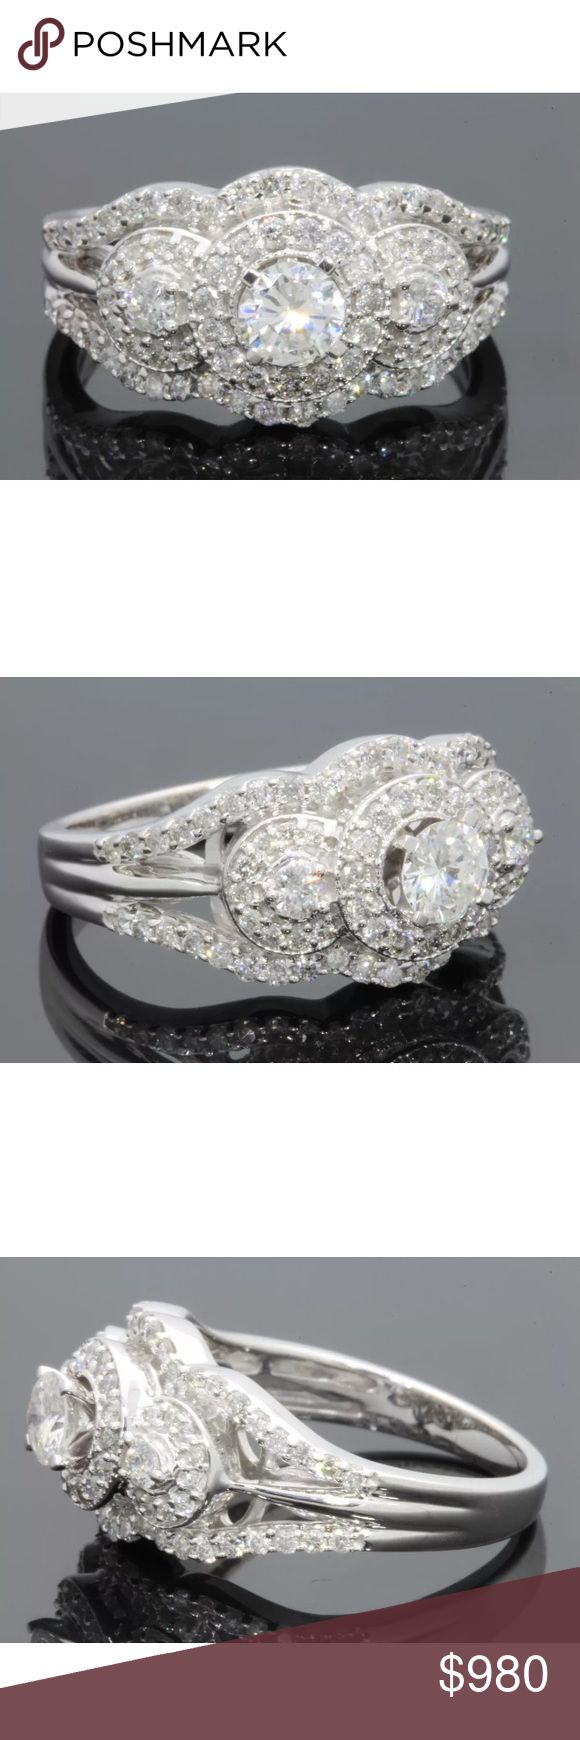 1.20 carat 14k white gold diamond halo style ring 1.20 carat 14k white gold diamond halo style ring. Very nice genuine diamond ring for a fraction of the cost! High quality! Retail $2600 Jewelry Rings